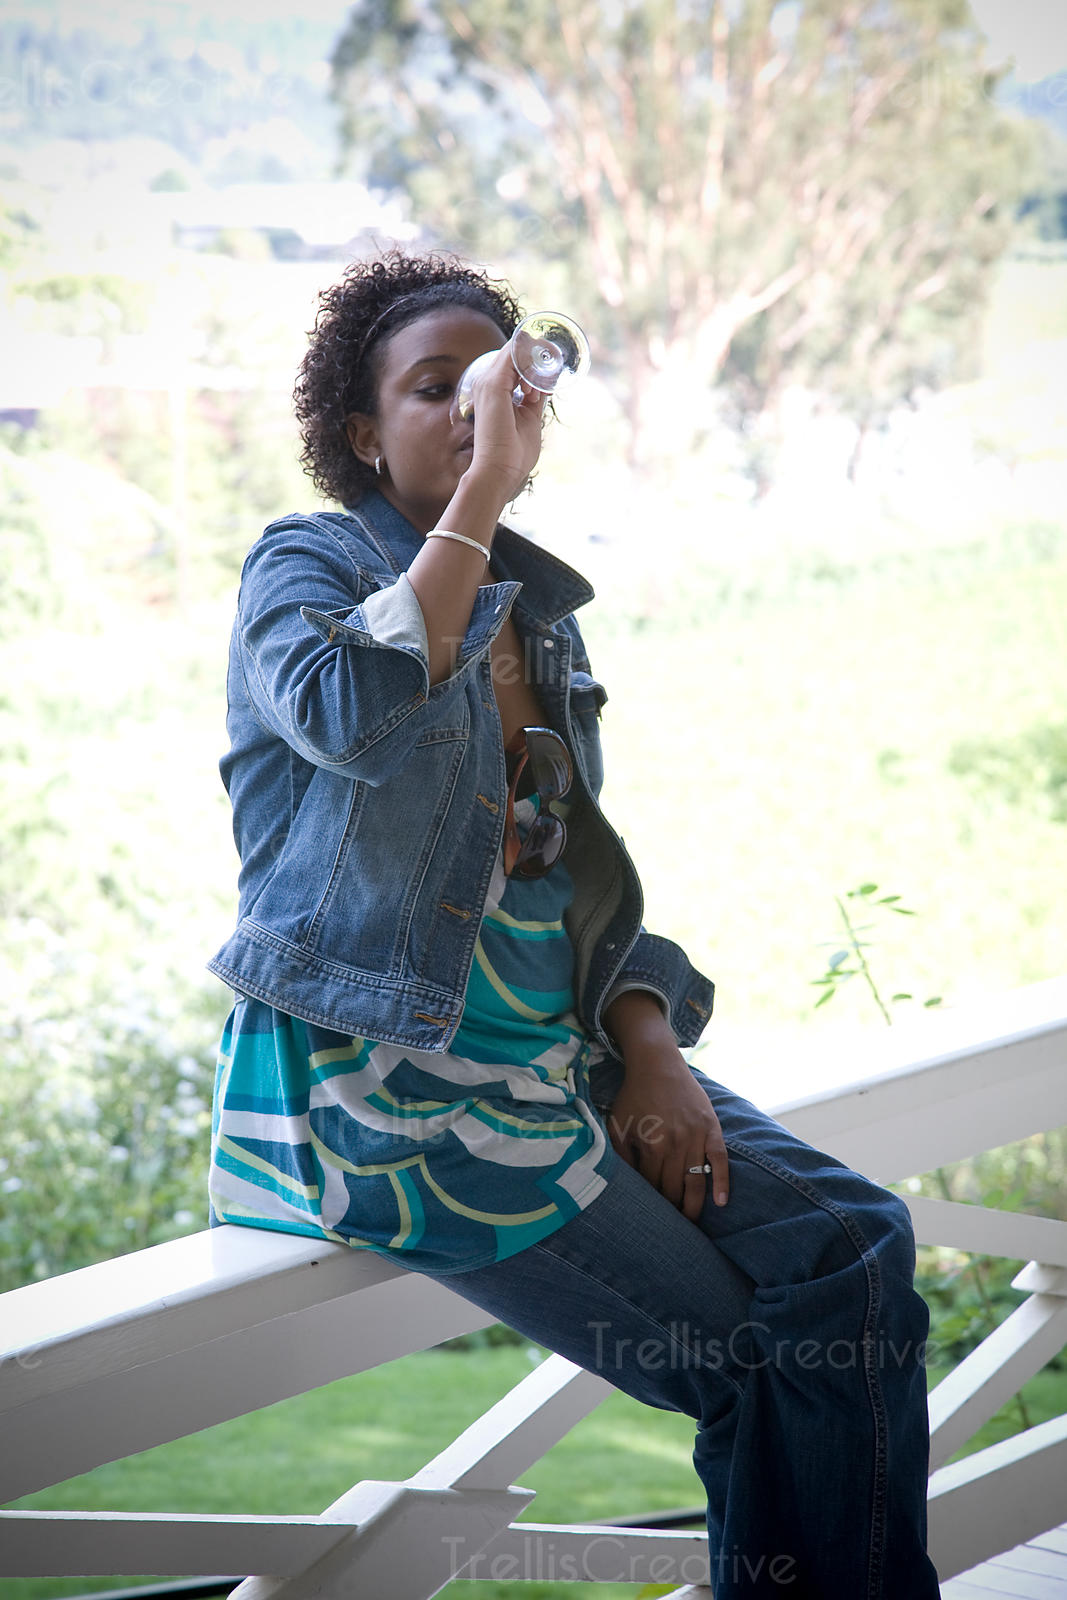 A young Black woman sips a glass of wine on a porch